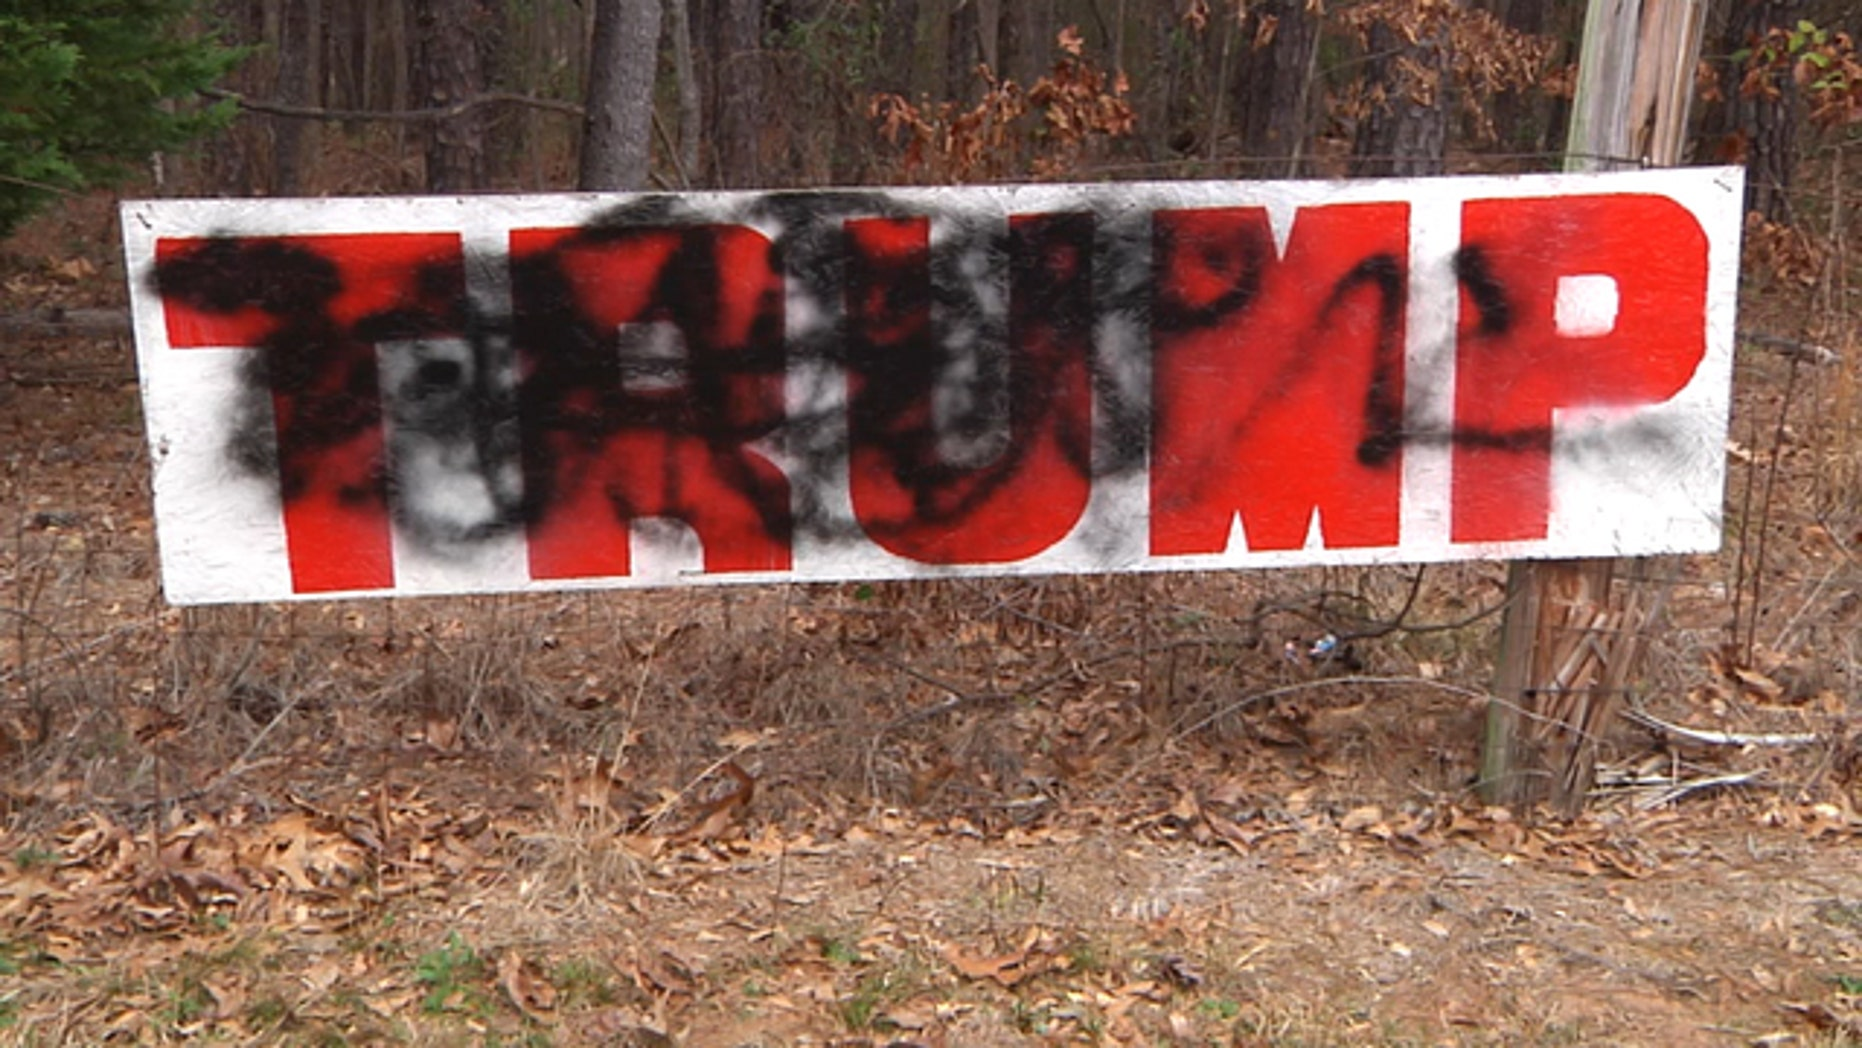 A pro-Trump sign owned by Jeff Solomon which was vandalized this week.